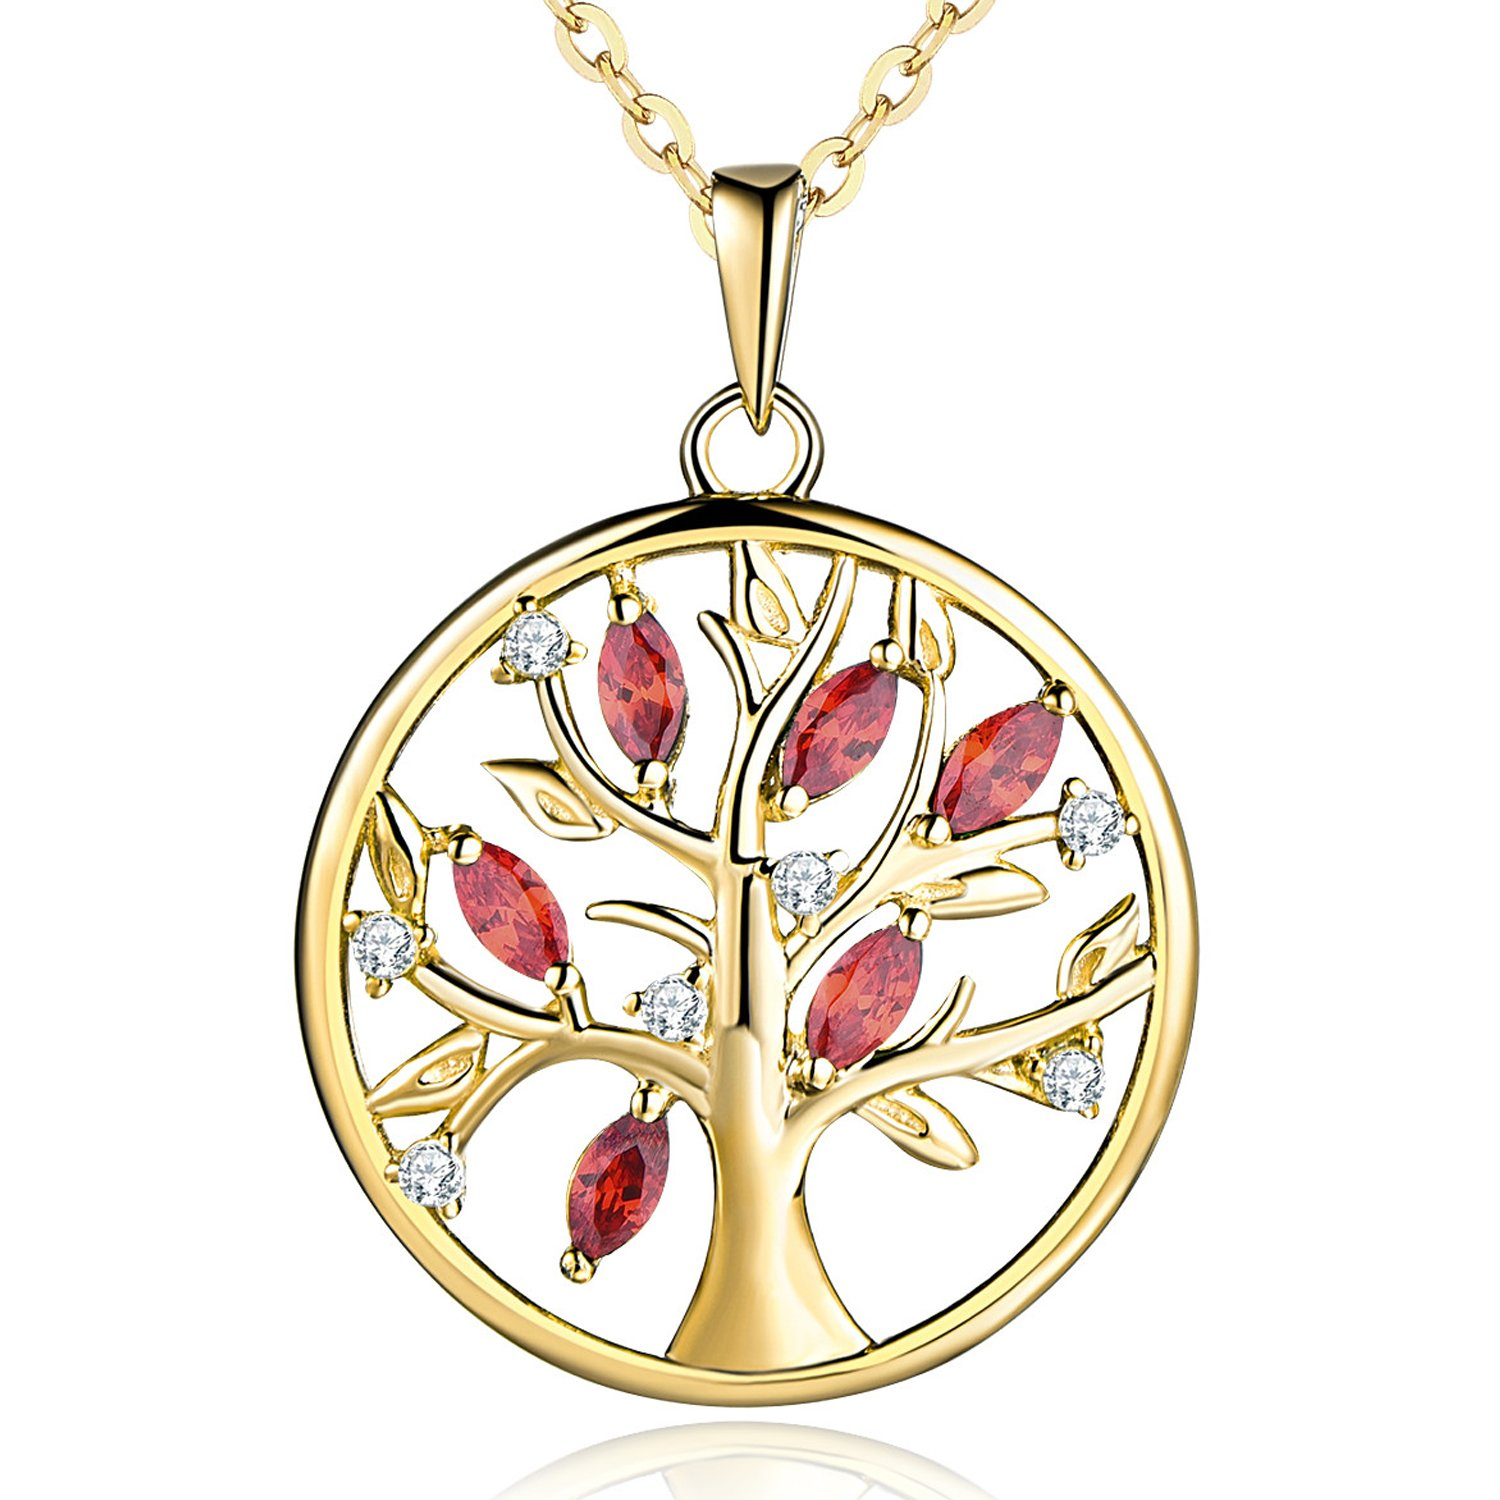 orders love overstock pendant floating locket shipping queenberry watches round family crystals product over heart charm jewelry necklace tree on free